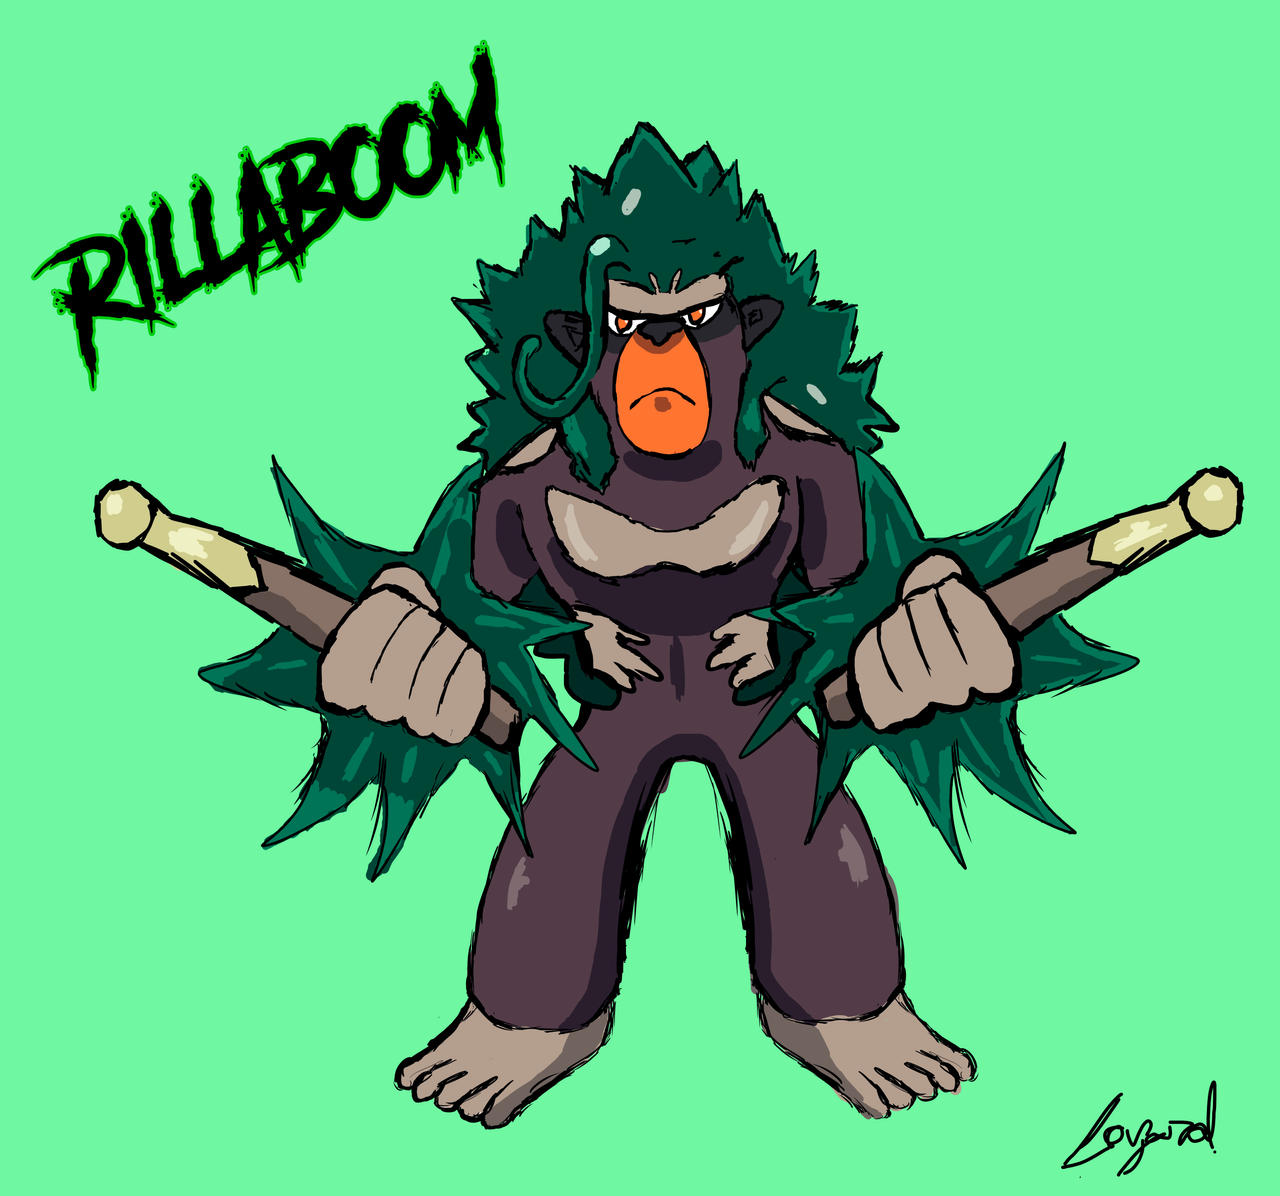 Rillaboom Pokemon Grookey Final Evolution By Jazahal On Deviantart By dudebulge, posted a year ago drawer of dudes. pokemon grookey final evolution by